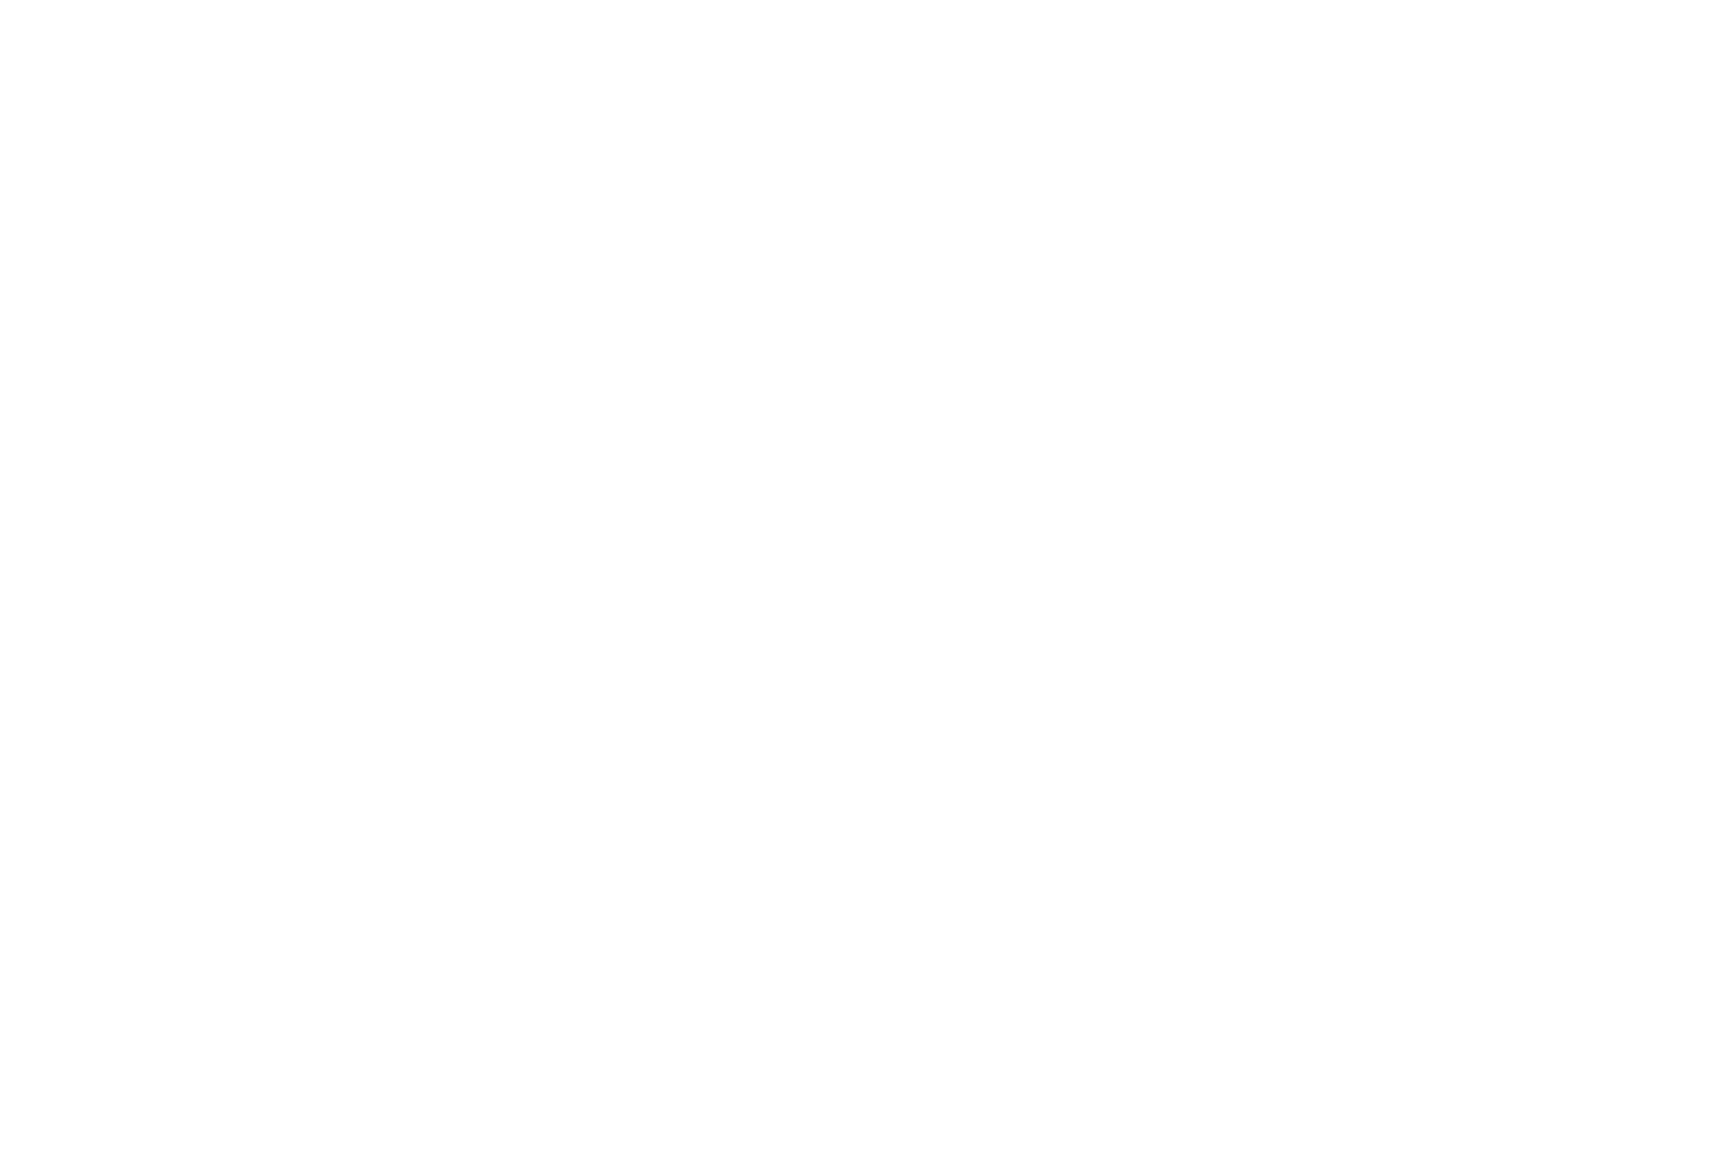 OFFICIAL-SELECTION-Sci-Fi-Fantasy-Genre-Lab-Presented-by-Lift-Off-Global-Network-2020